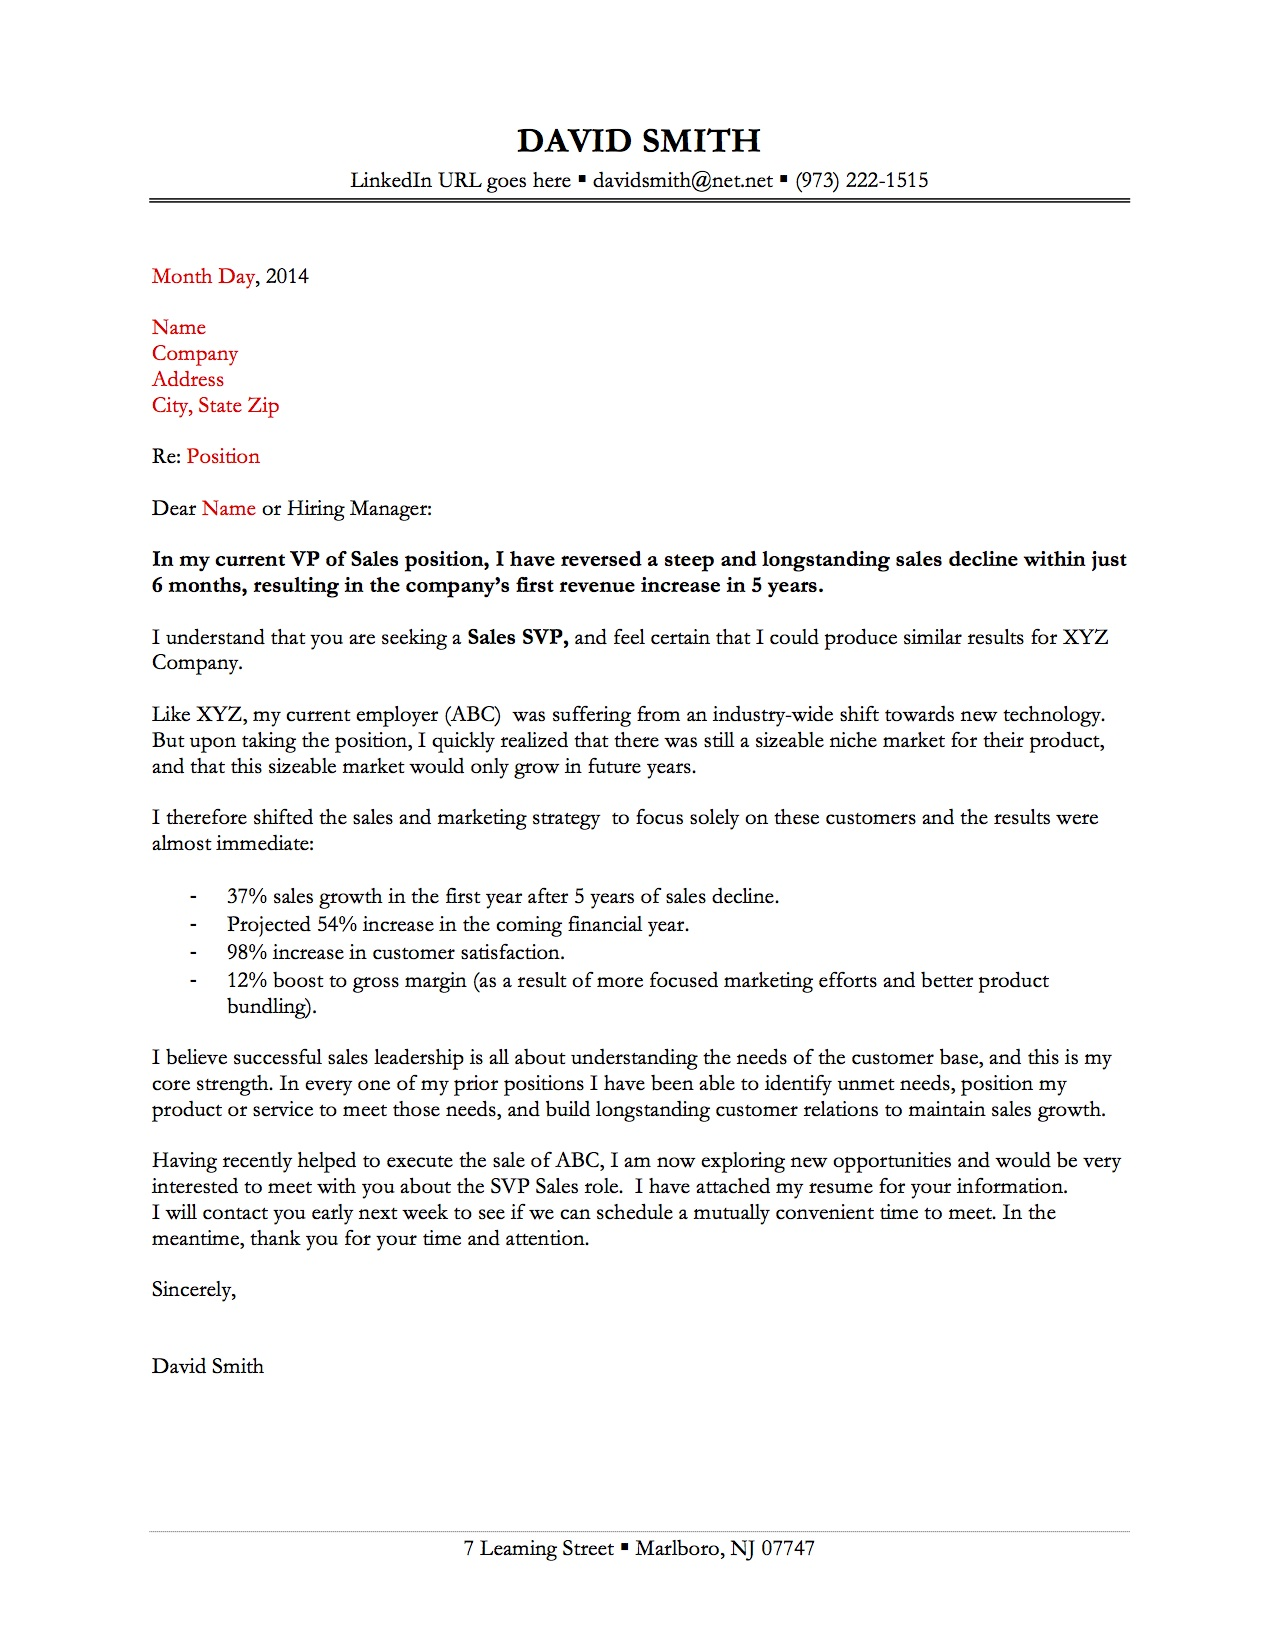 Lovely Sample Cover Letter 2 Regarding How To Write A Great Cover Letter